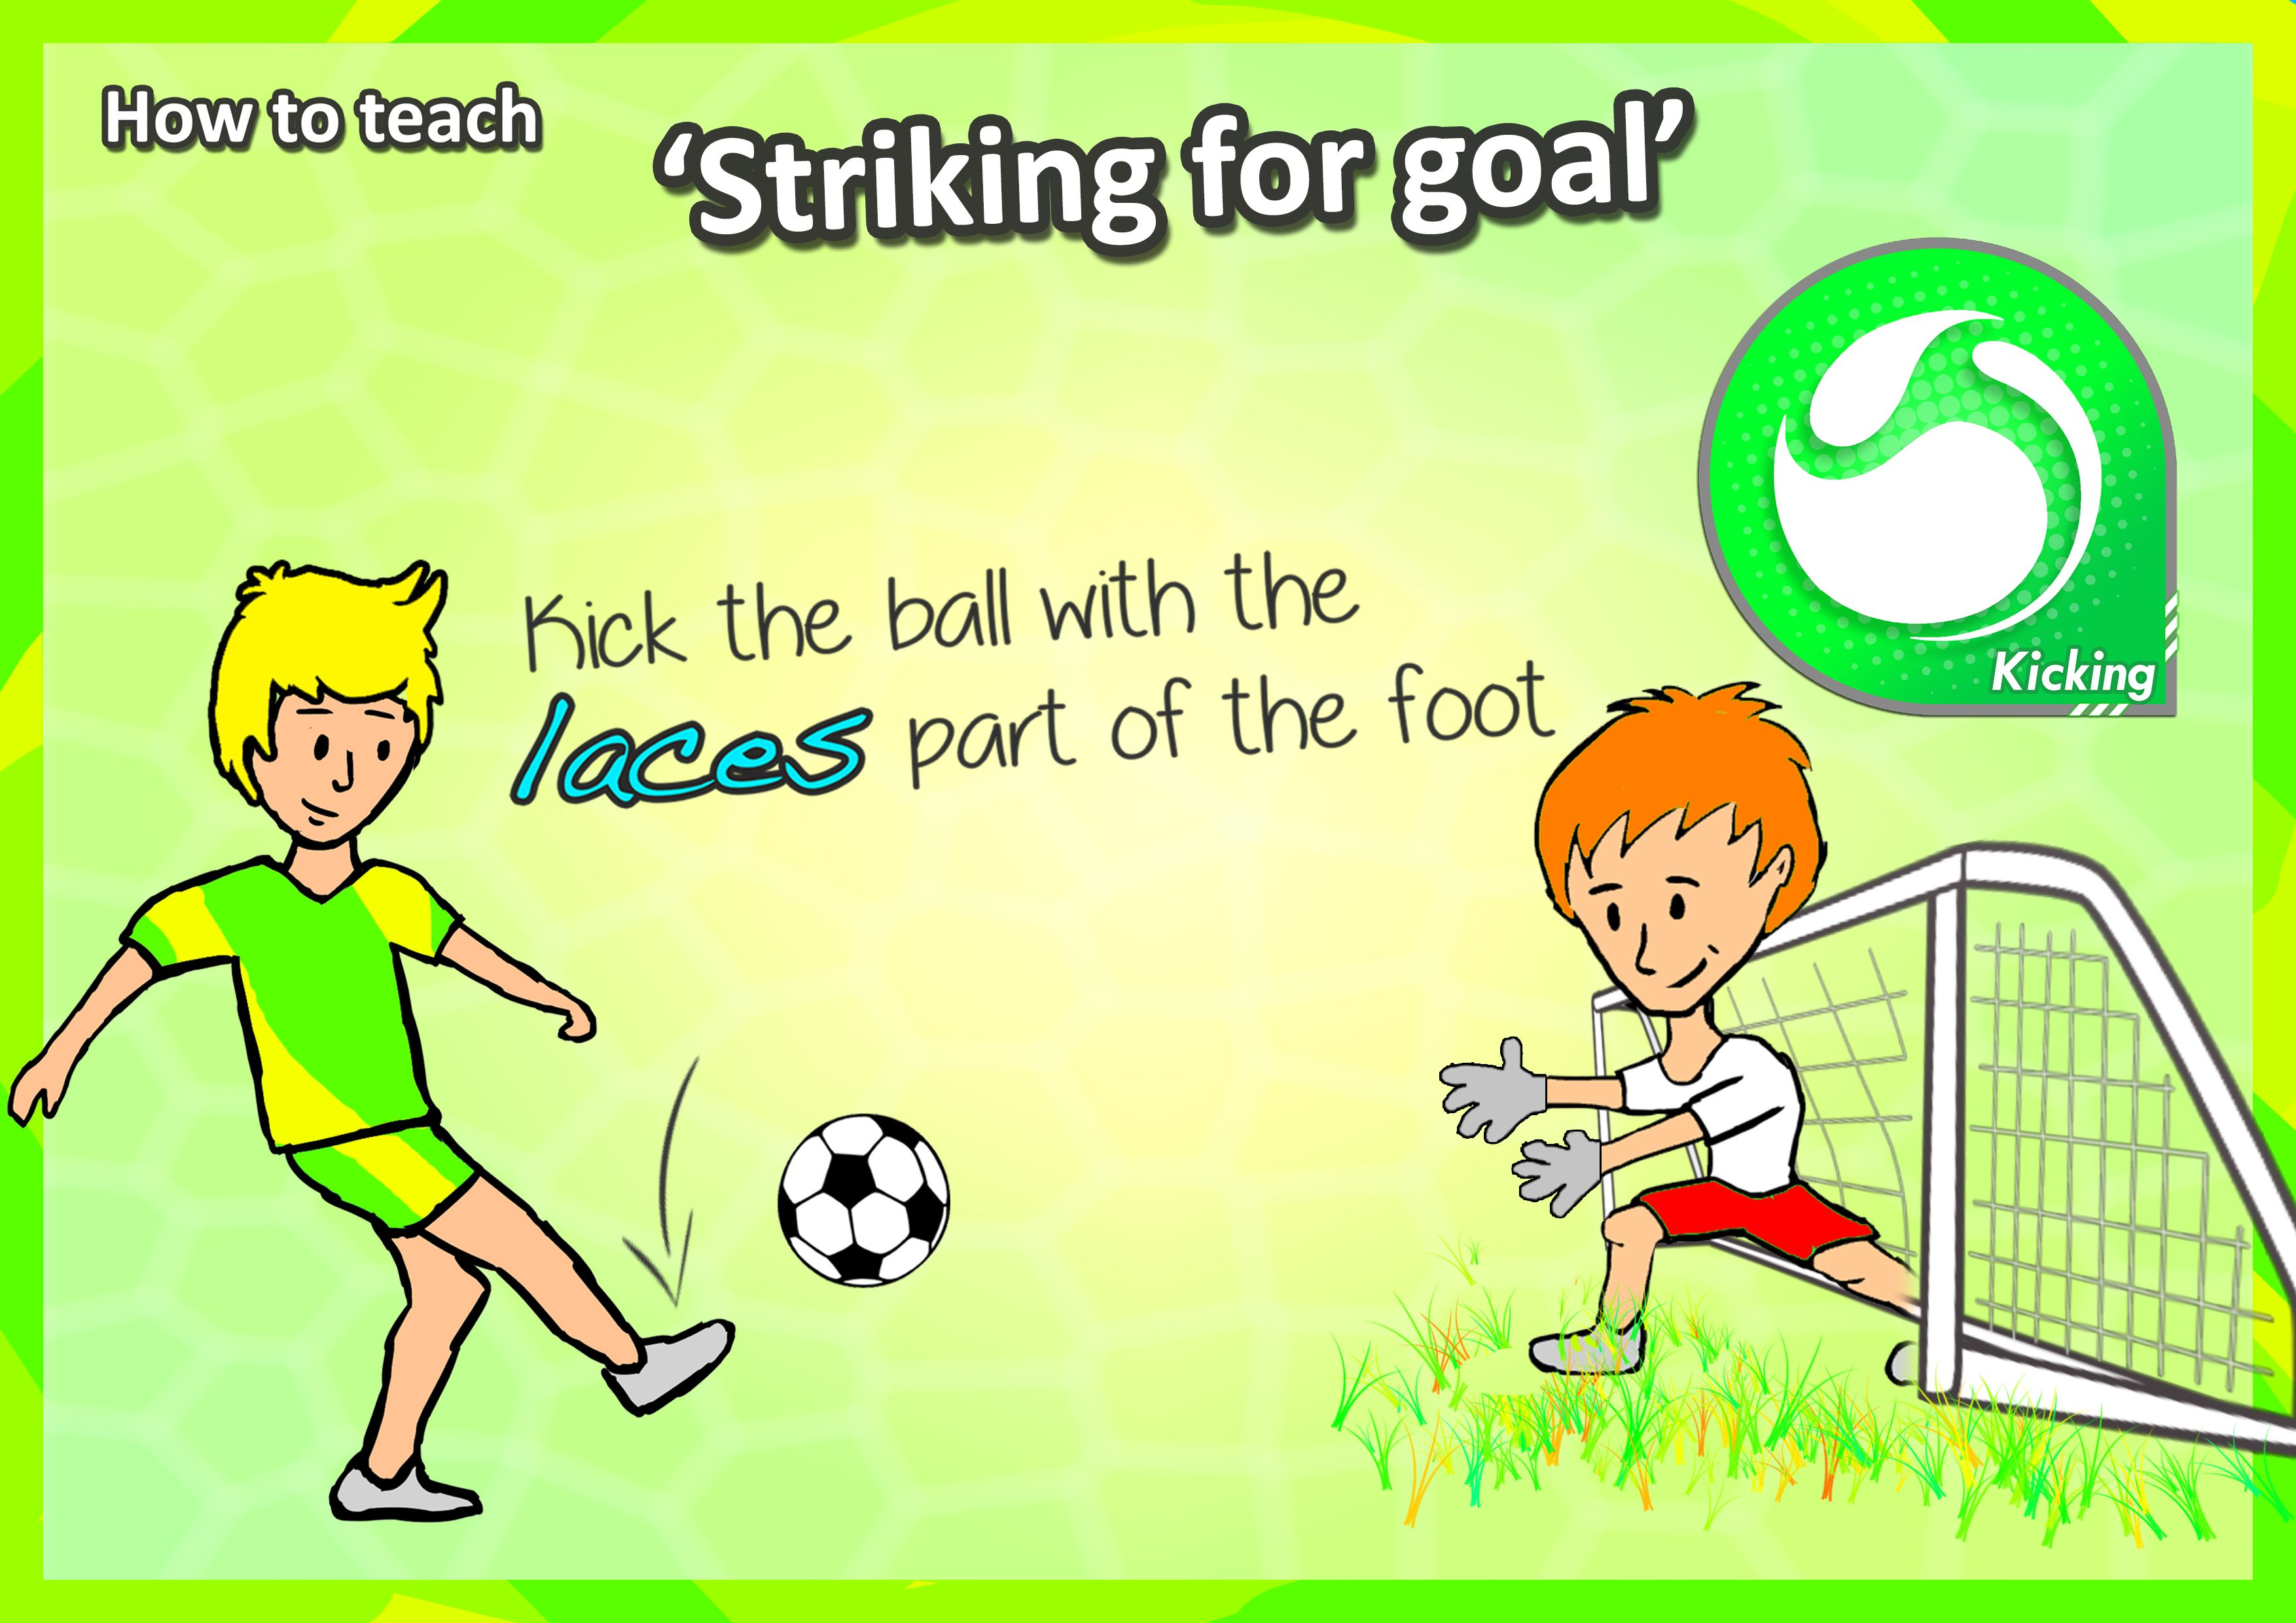 Kindergarten To Grade 2 Pe Games Complete Sport Skill And Games Pack 2018 Soccer Drills For Kids Coaching Kids Soccer Teaching